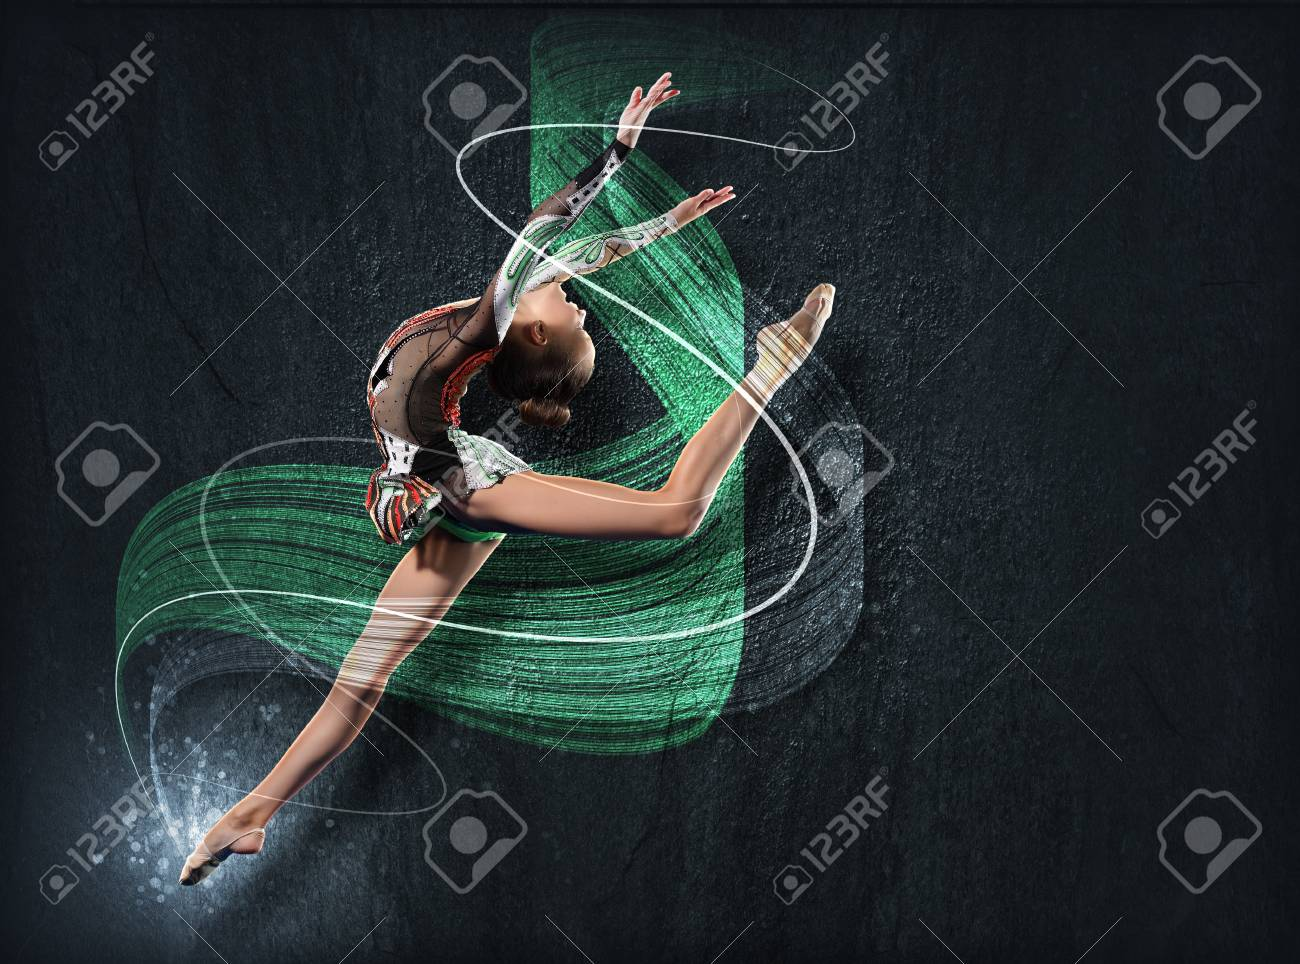 Young cute woman in gymnast suit show athletic skill on black background Stock Photo - 15543437